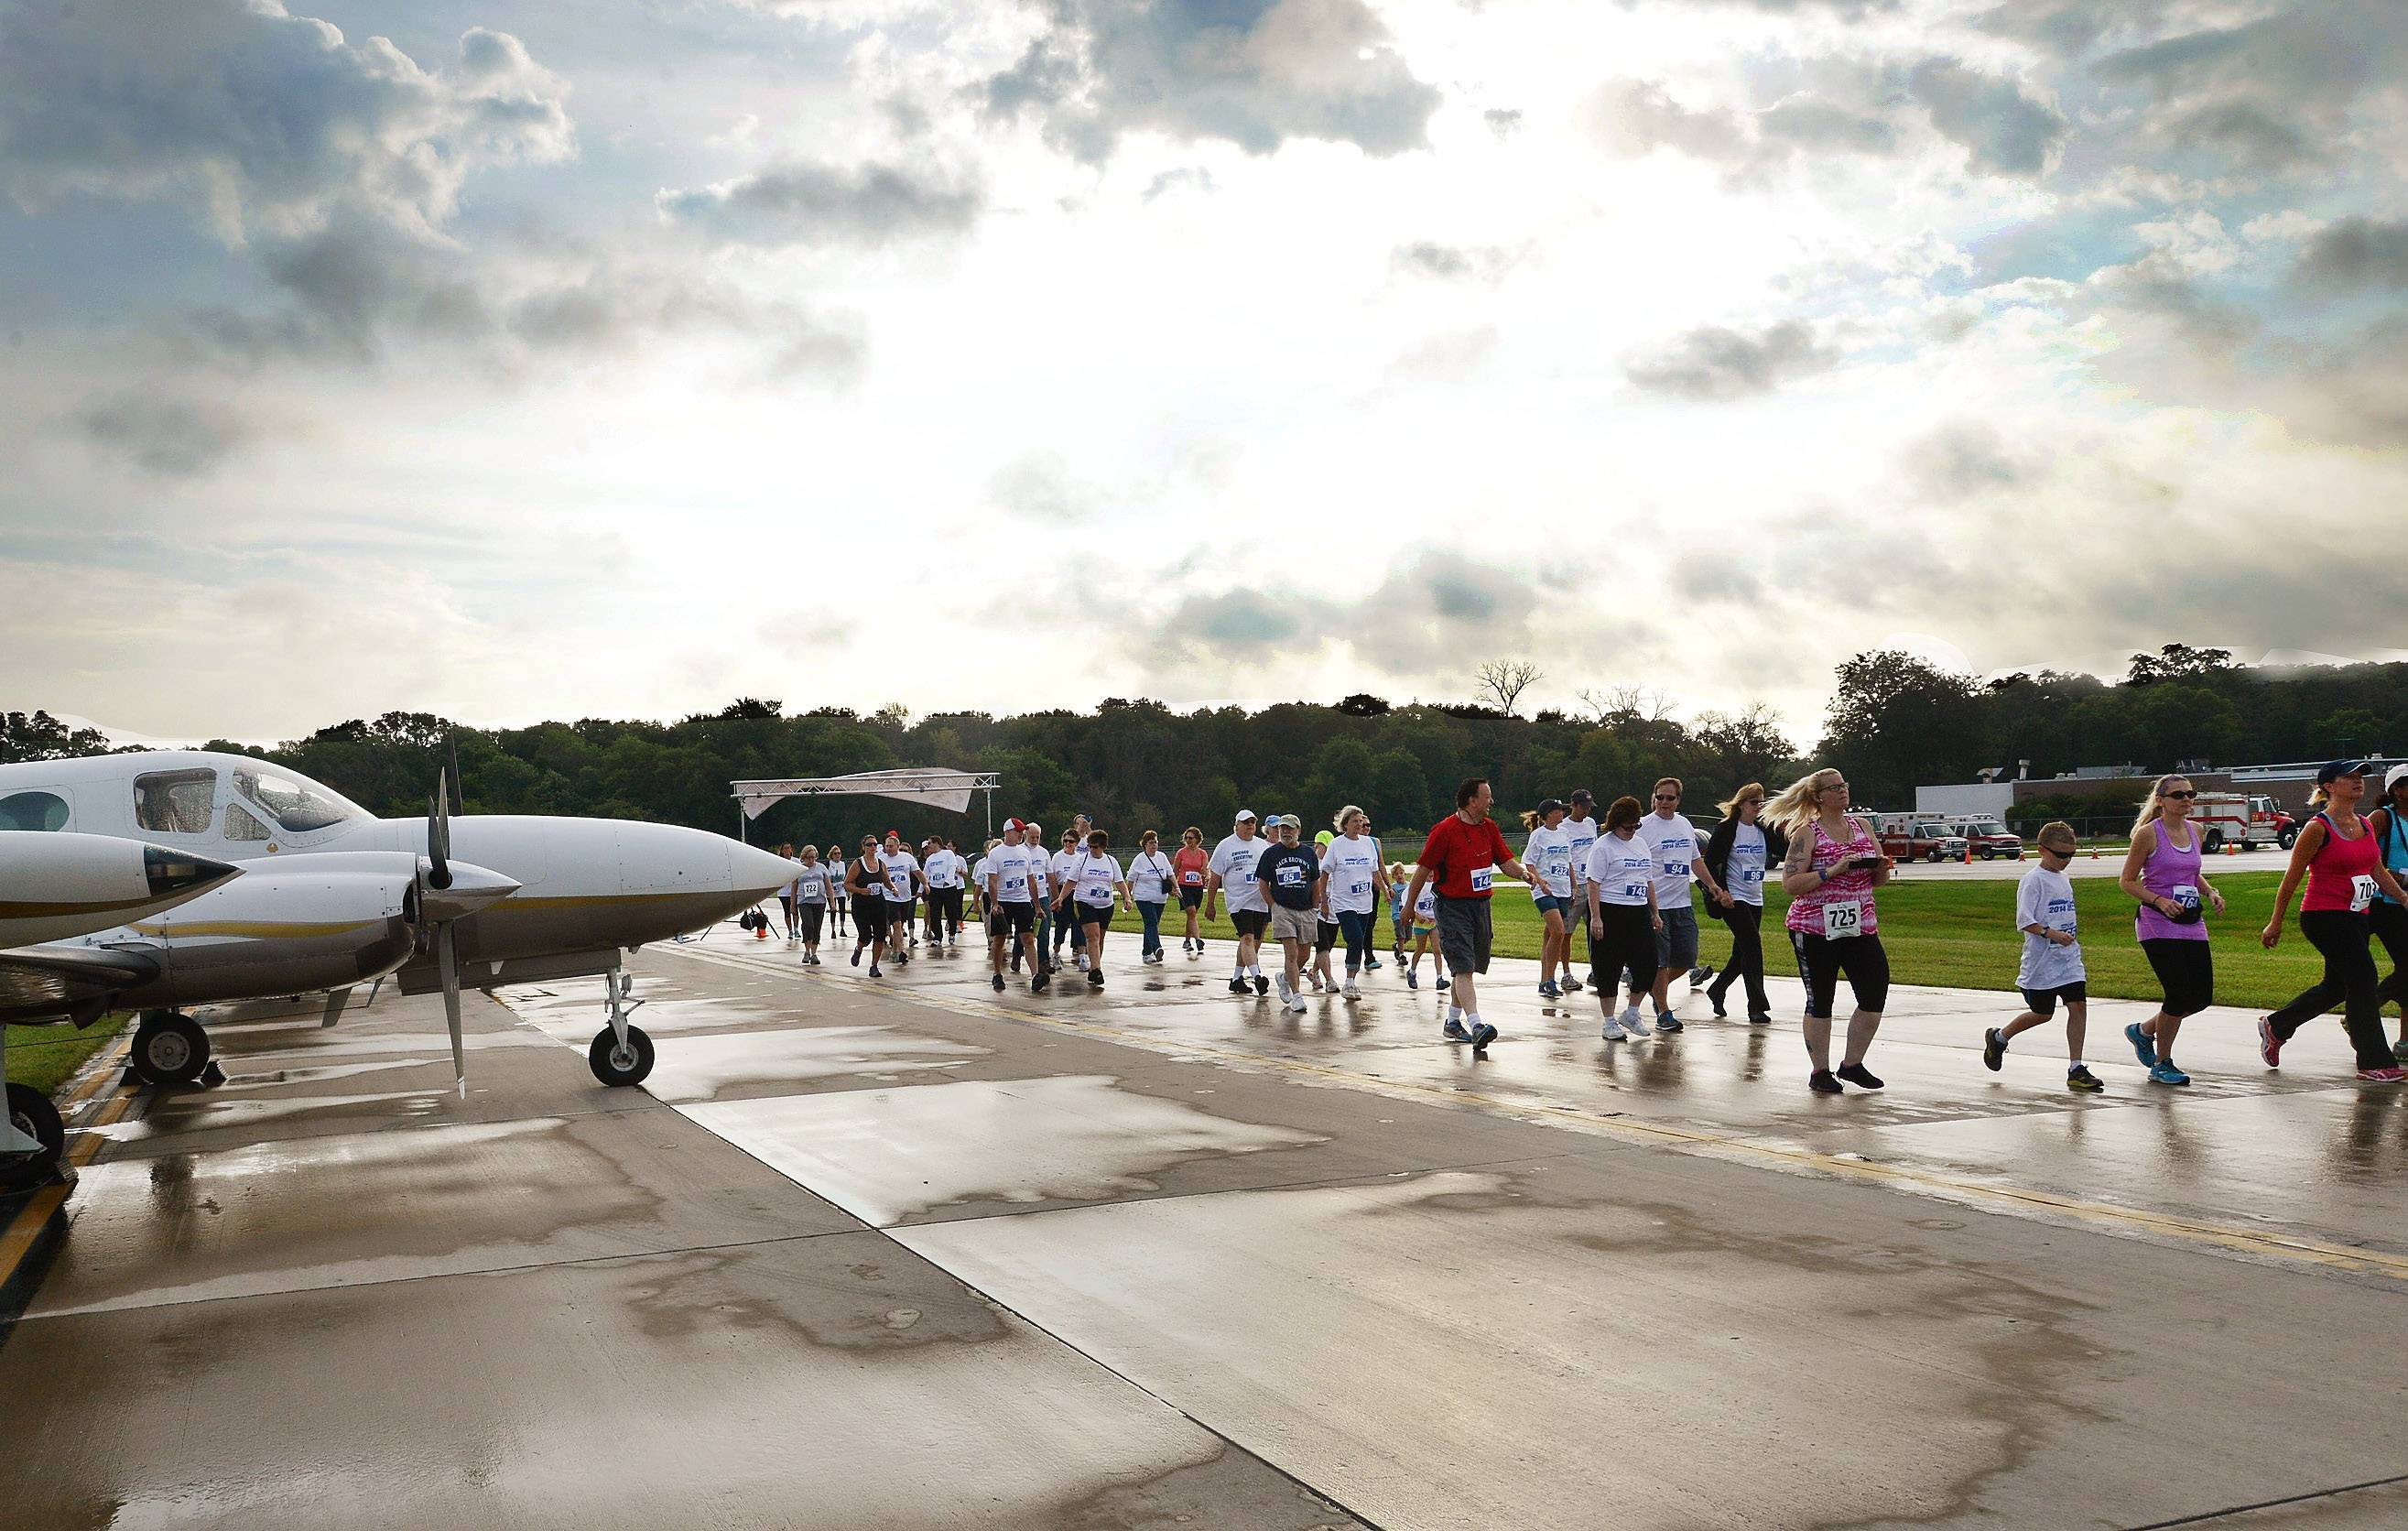 Runners take off down the runway for the Inaugural Run the Runway 5K Run &1 Mile Walk at Chicago Executive Airport in Wheeling.